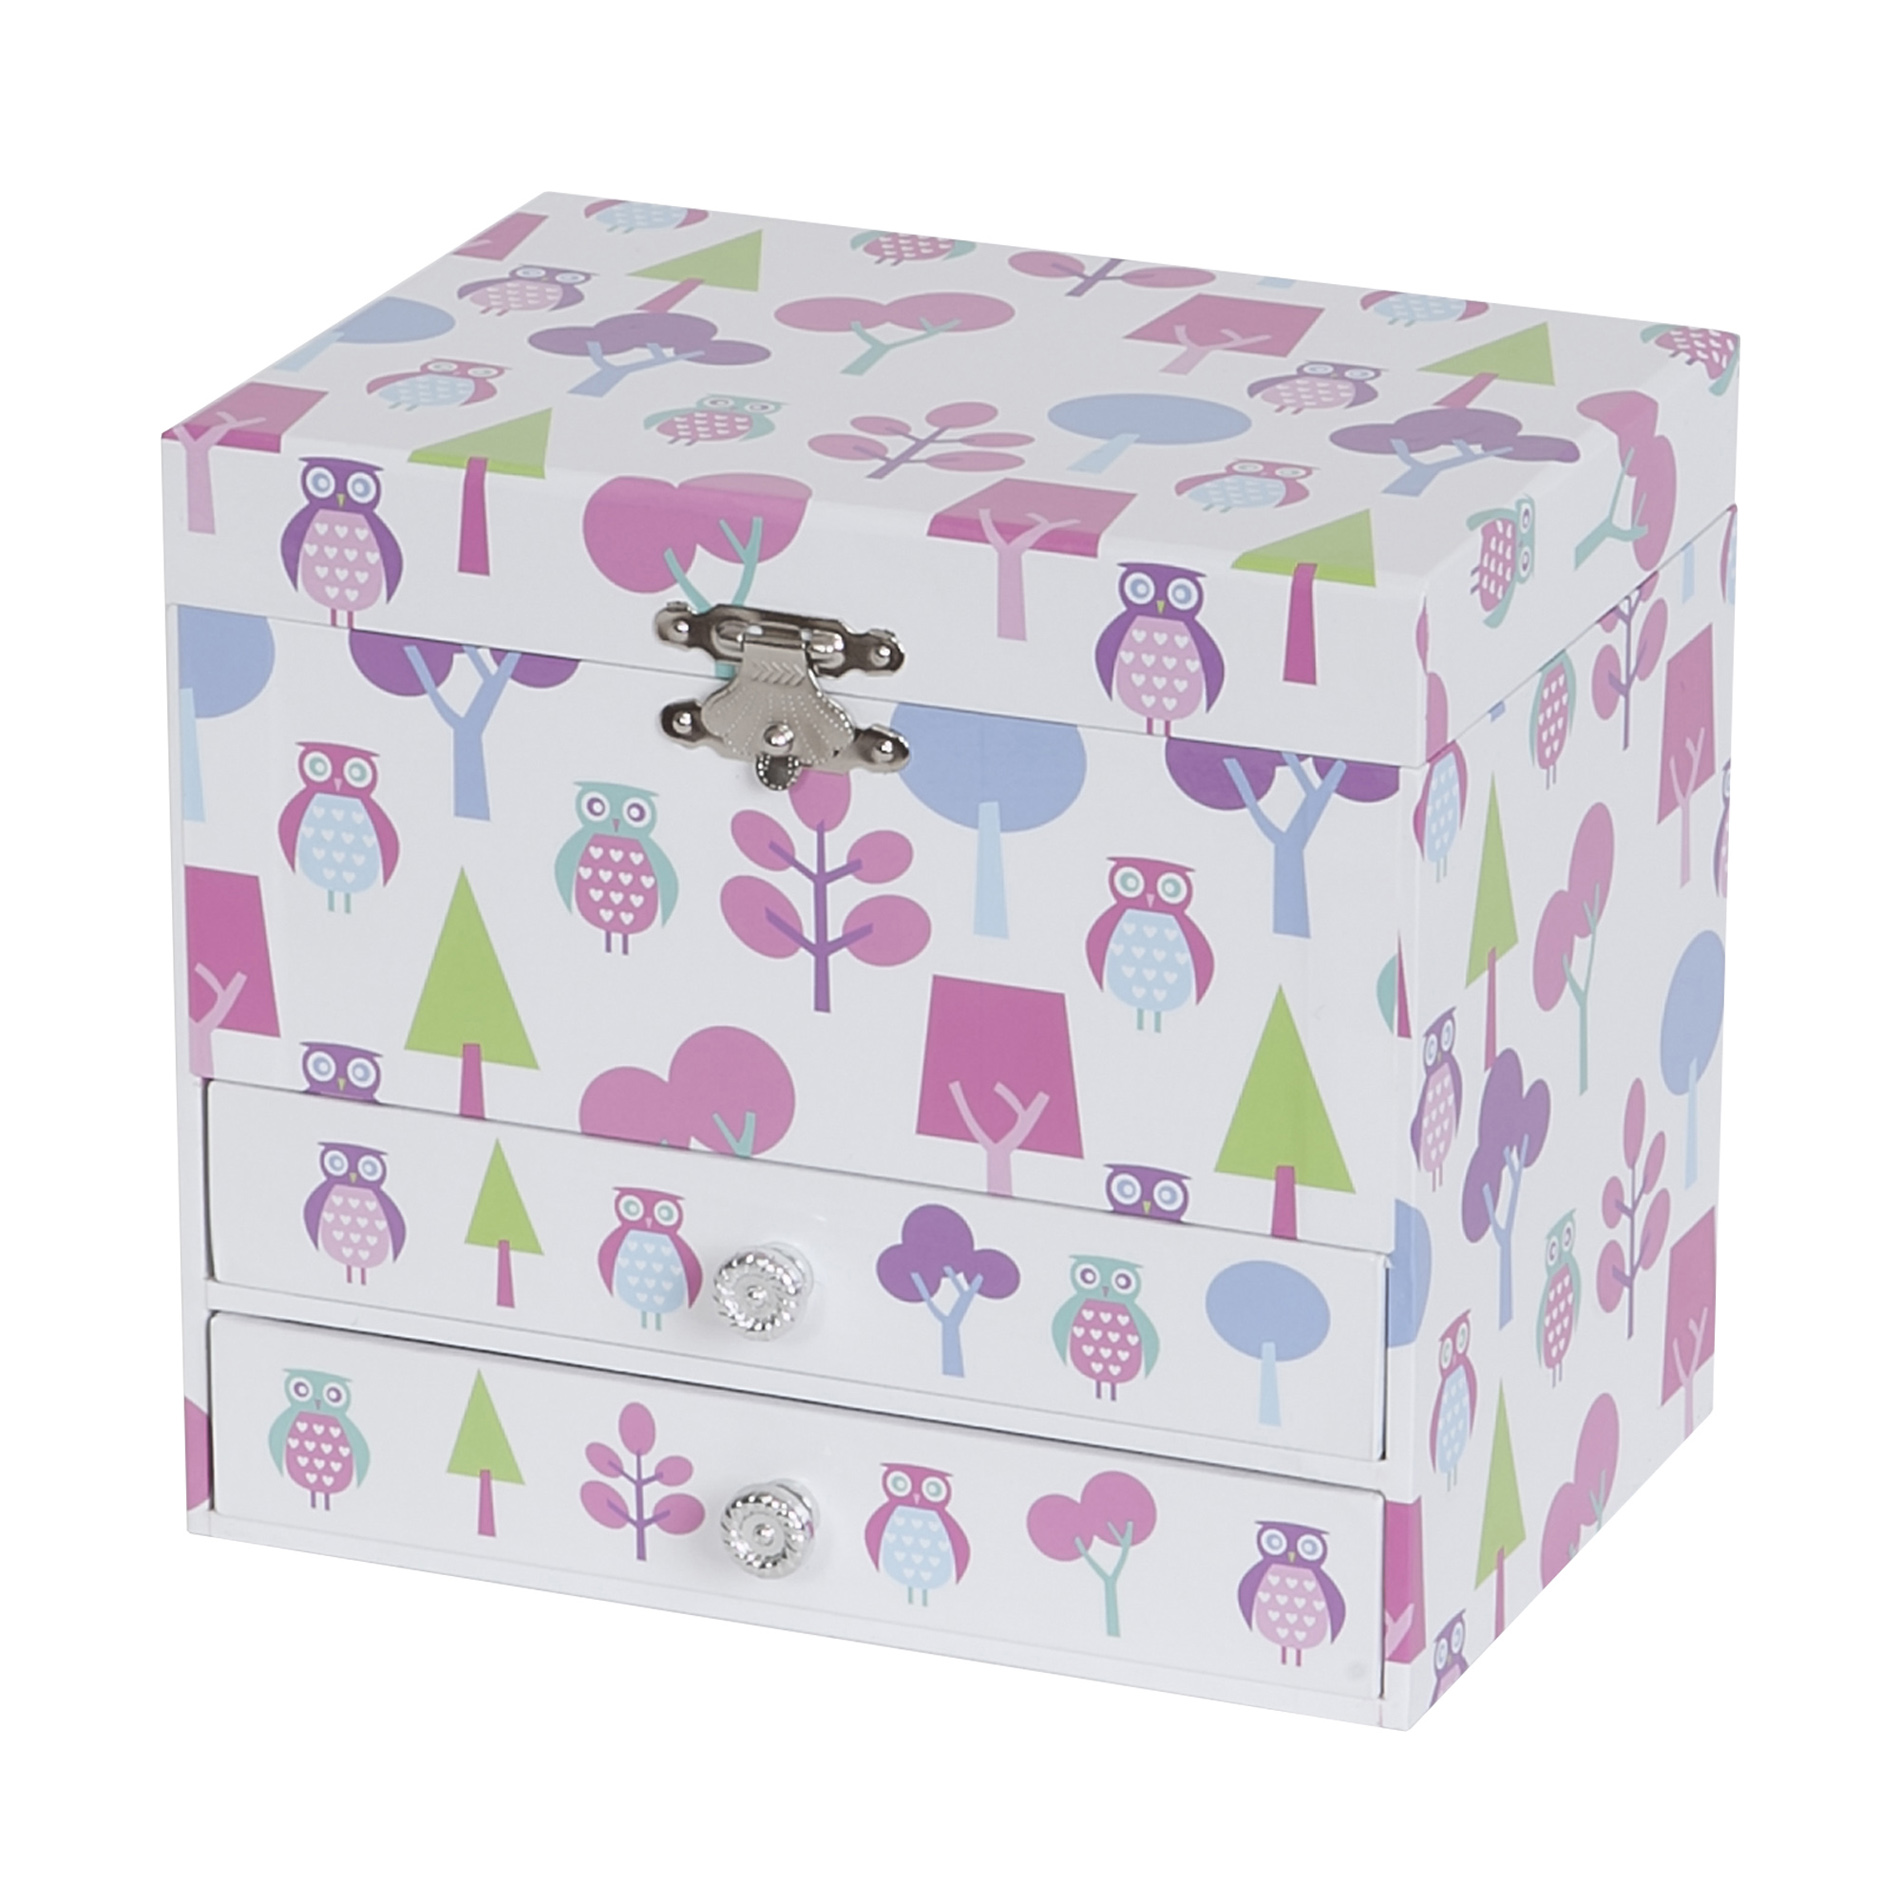 Mele & Co. Mele&Co. Girl's Musical Ballerina Jewelry Box, Owl Pattern